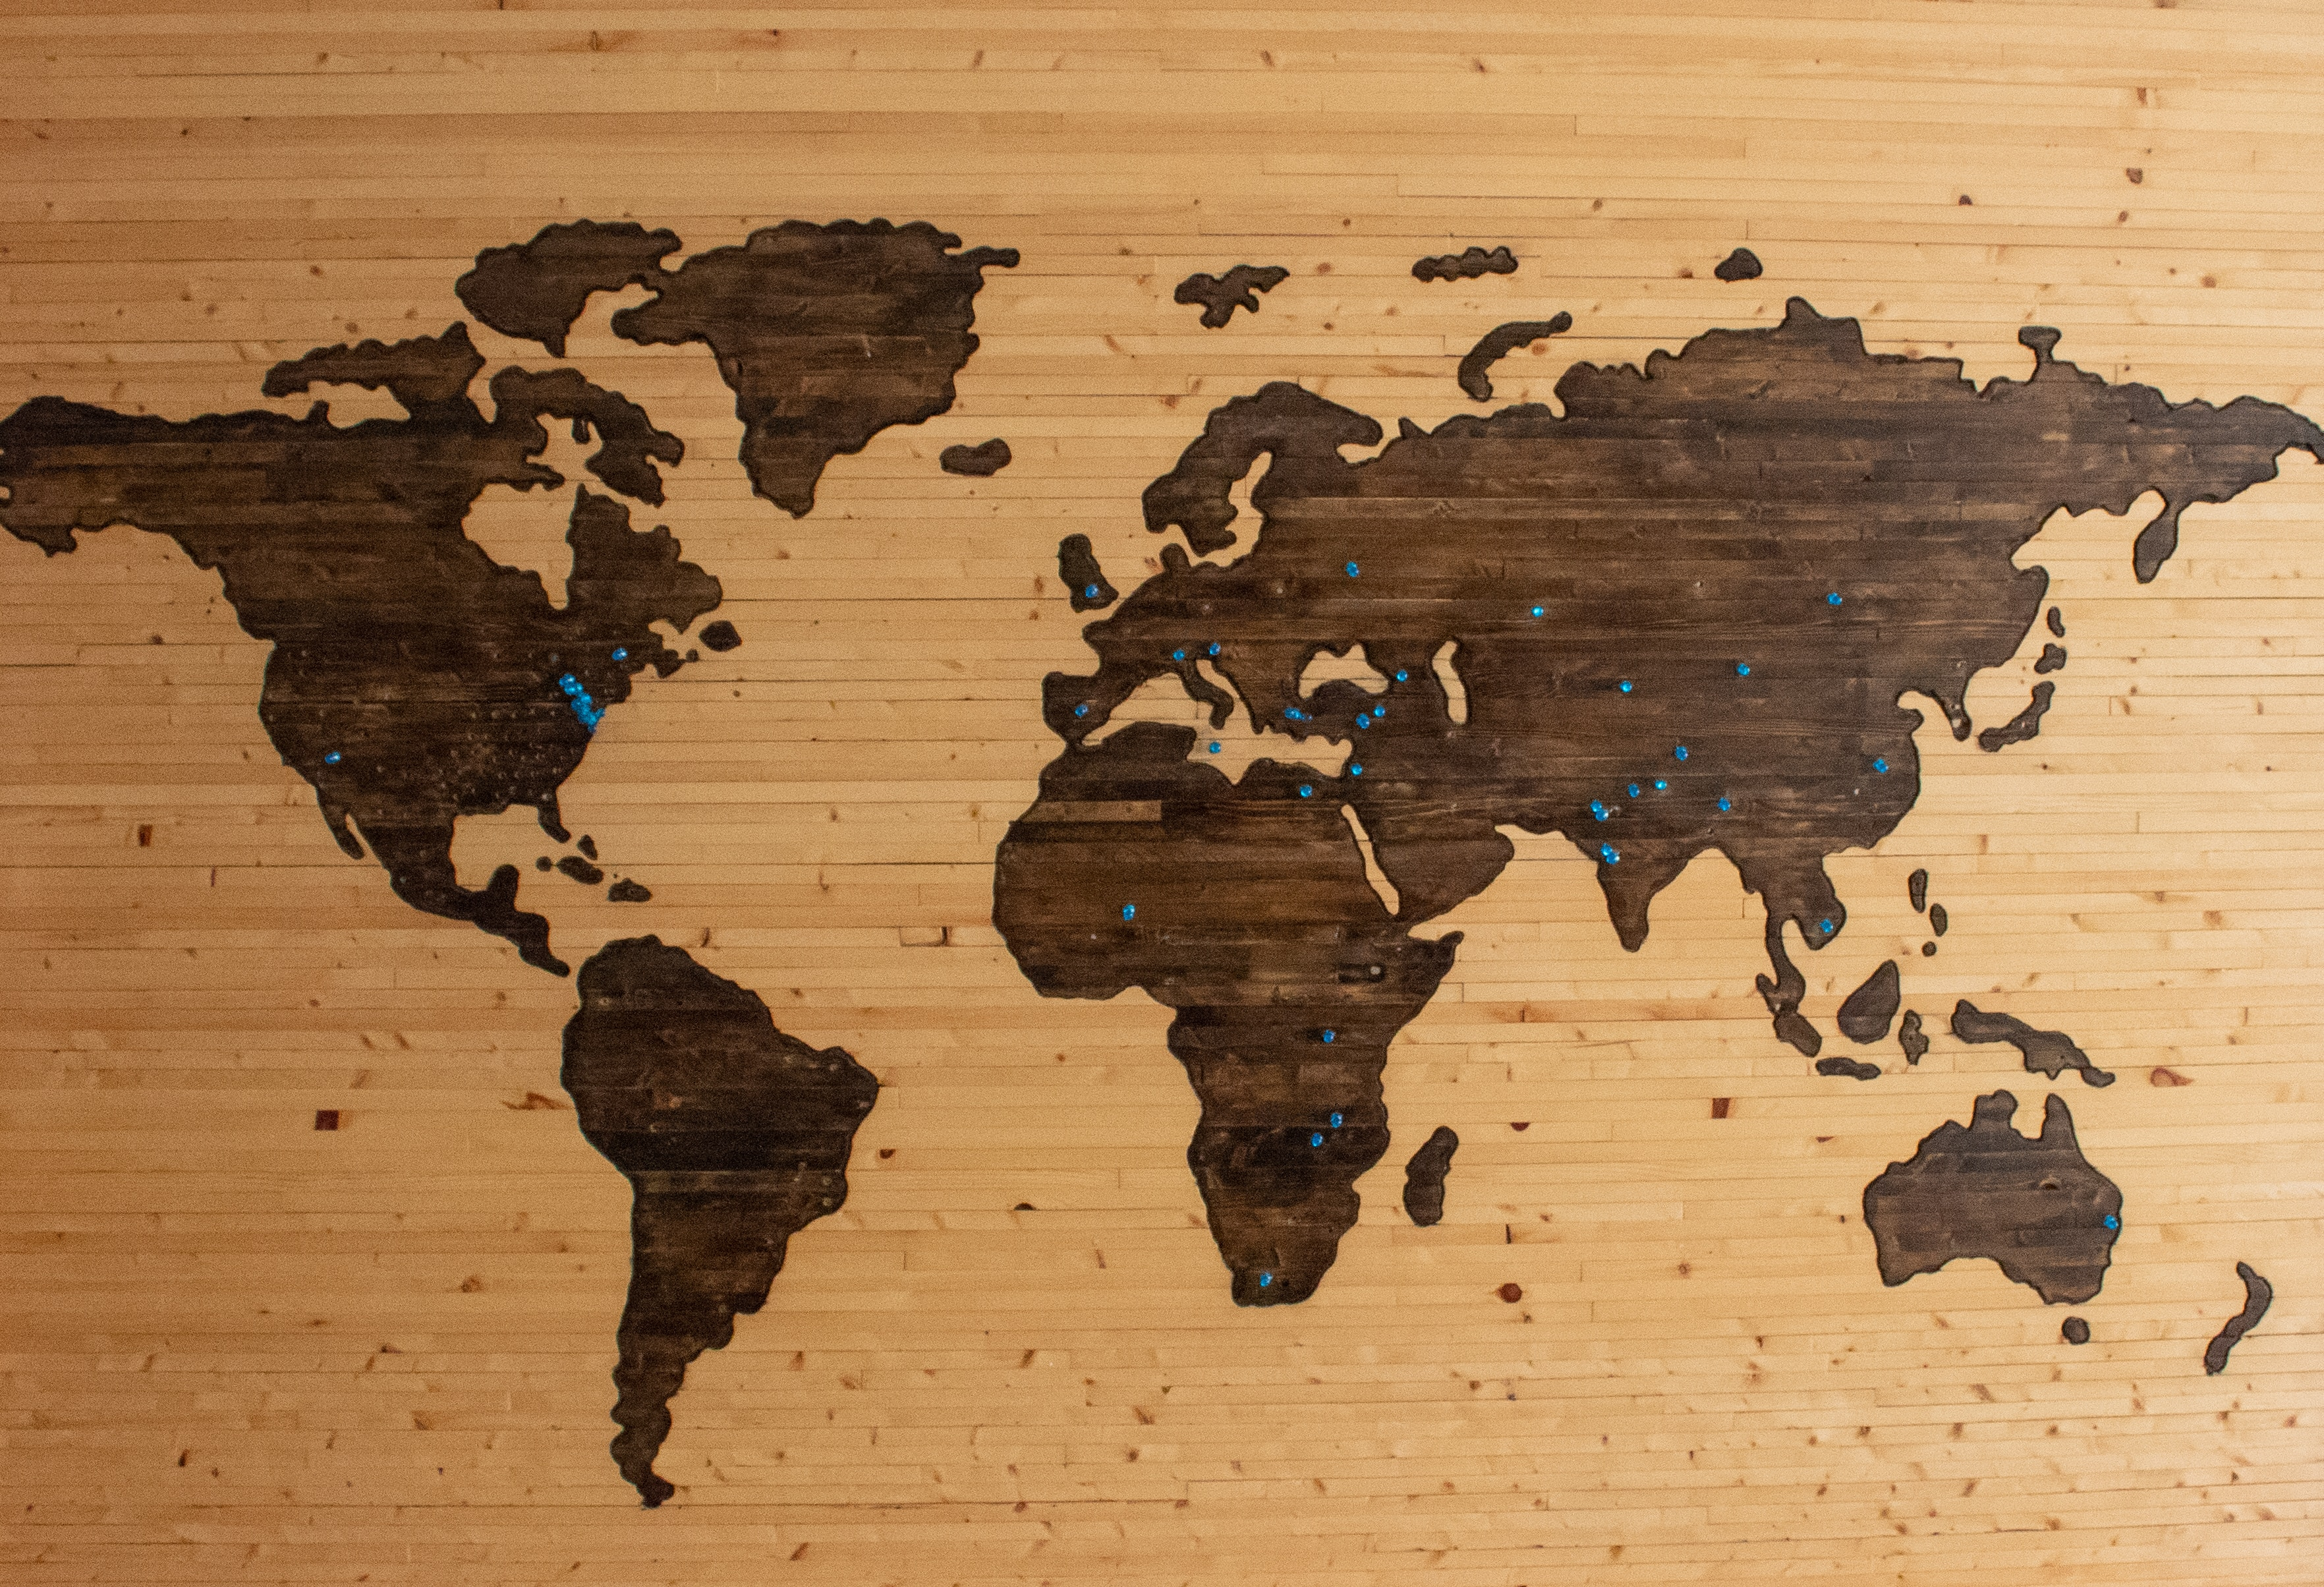 A world map against a brown sheet of wood with blue pins in certain places.